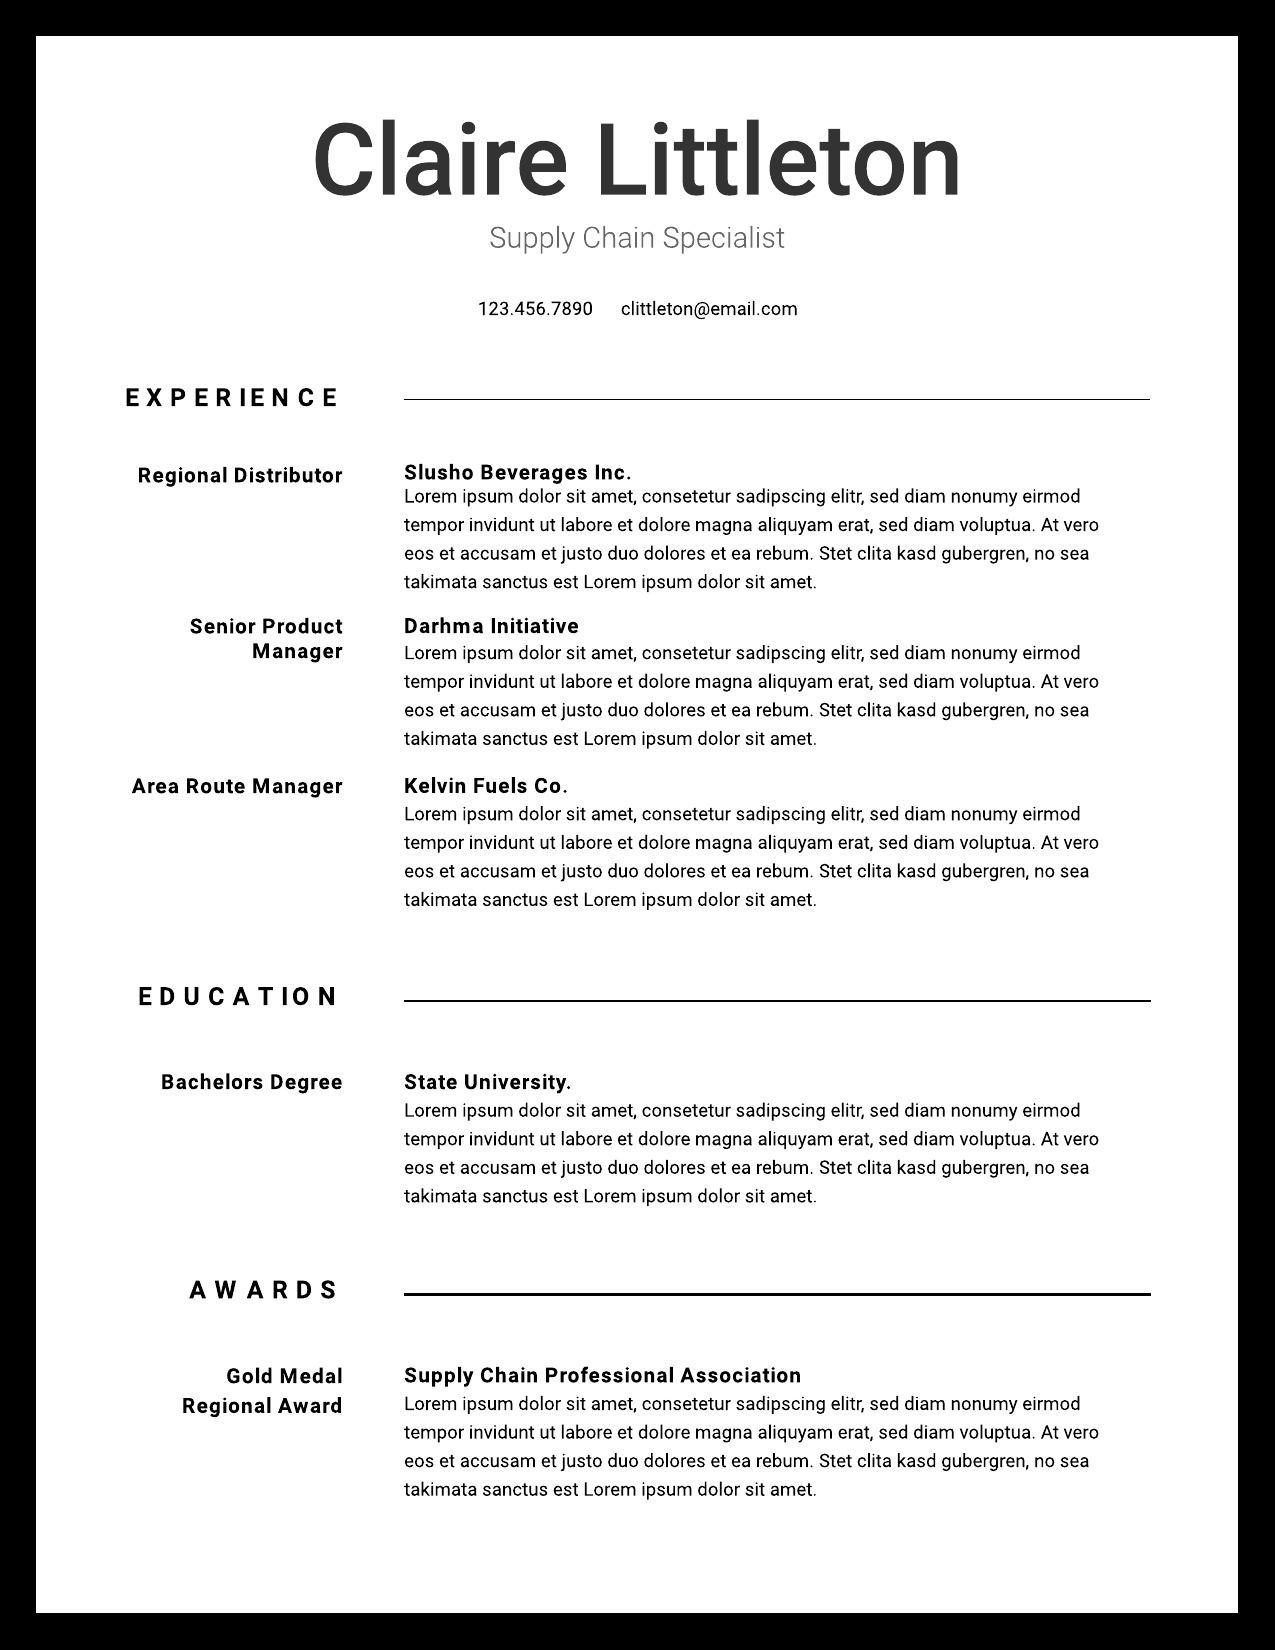 resume examples writing tips for lucidpress and samples image09 current skills summary Resume Resume Writing Tips And Samples